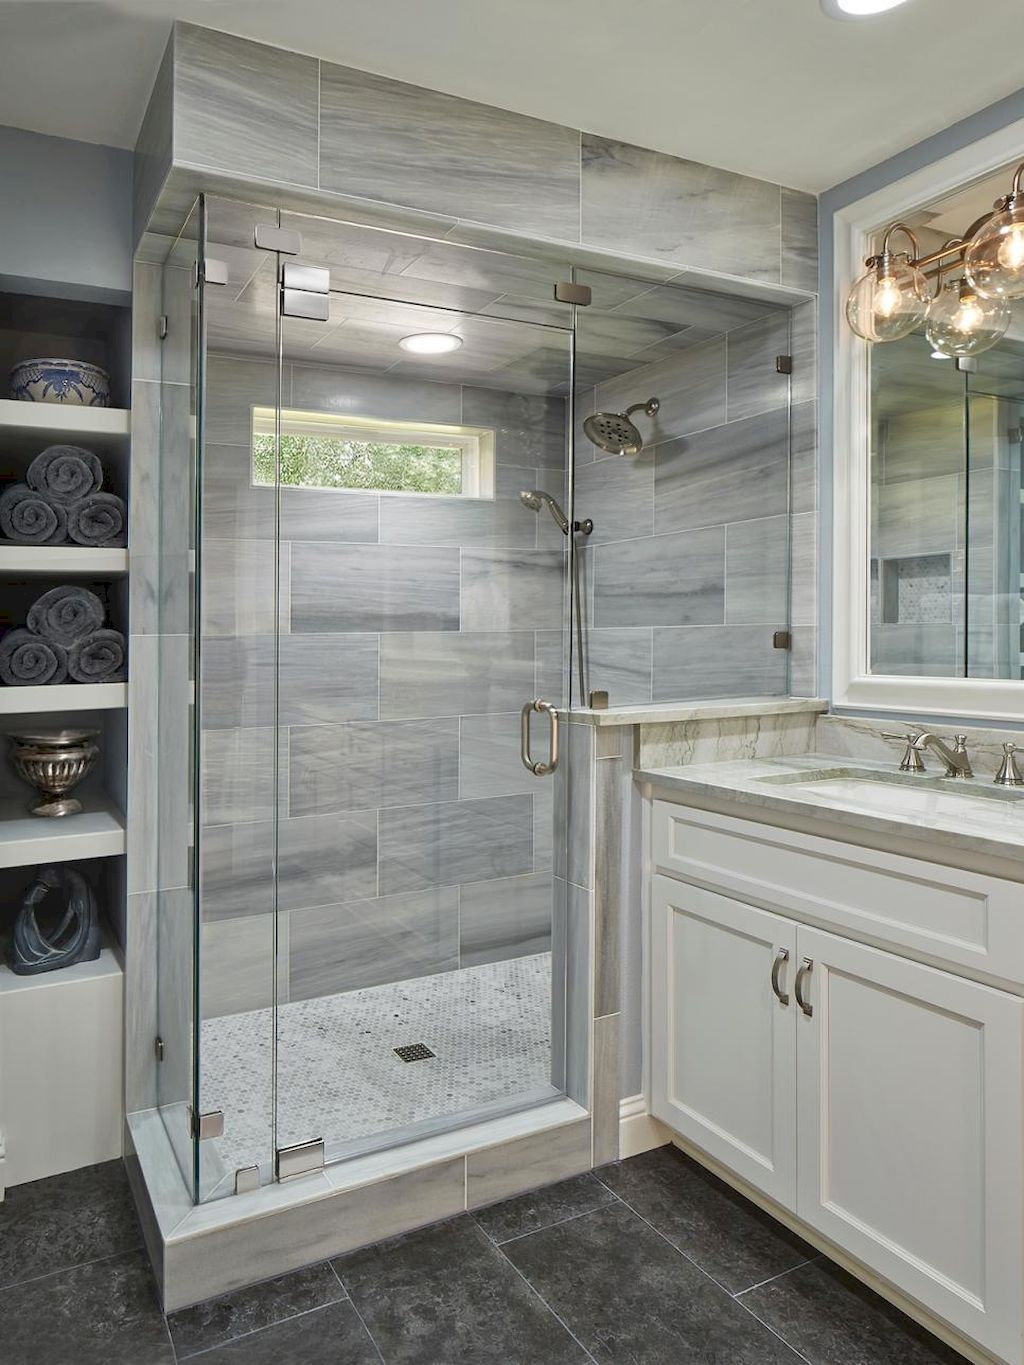 50 Beautiful Bathroom Shower Tile Ideas In 2020 Small Master Bathroom Bathroom Remodel Master Small Bathroom Remodel